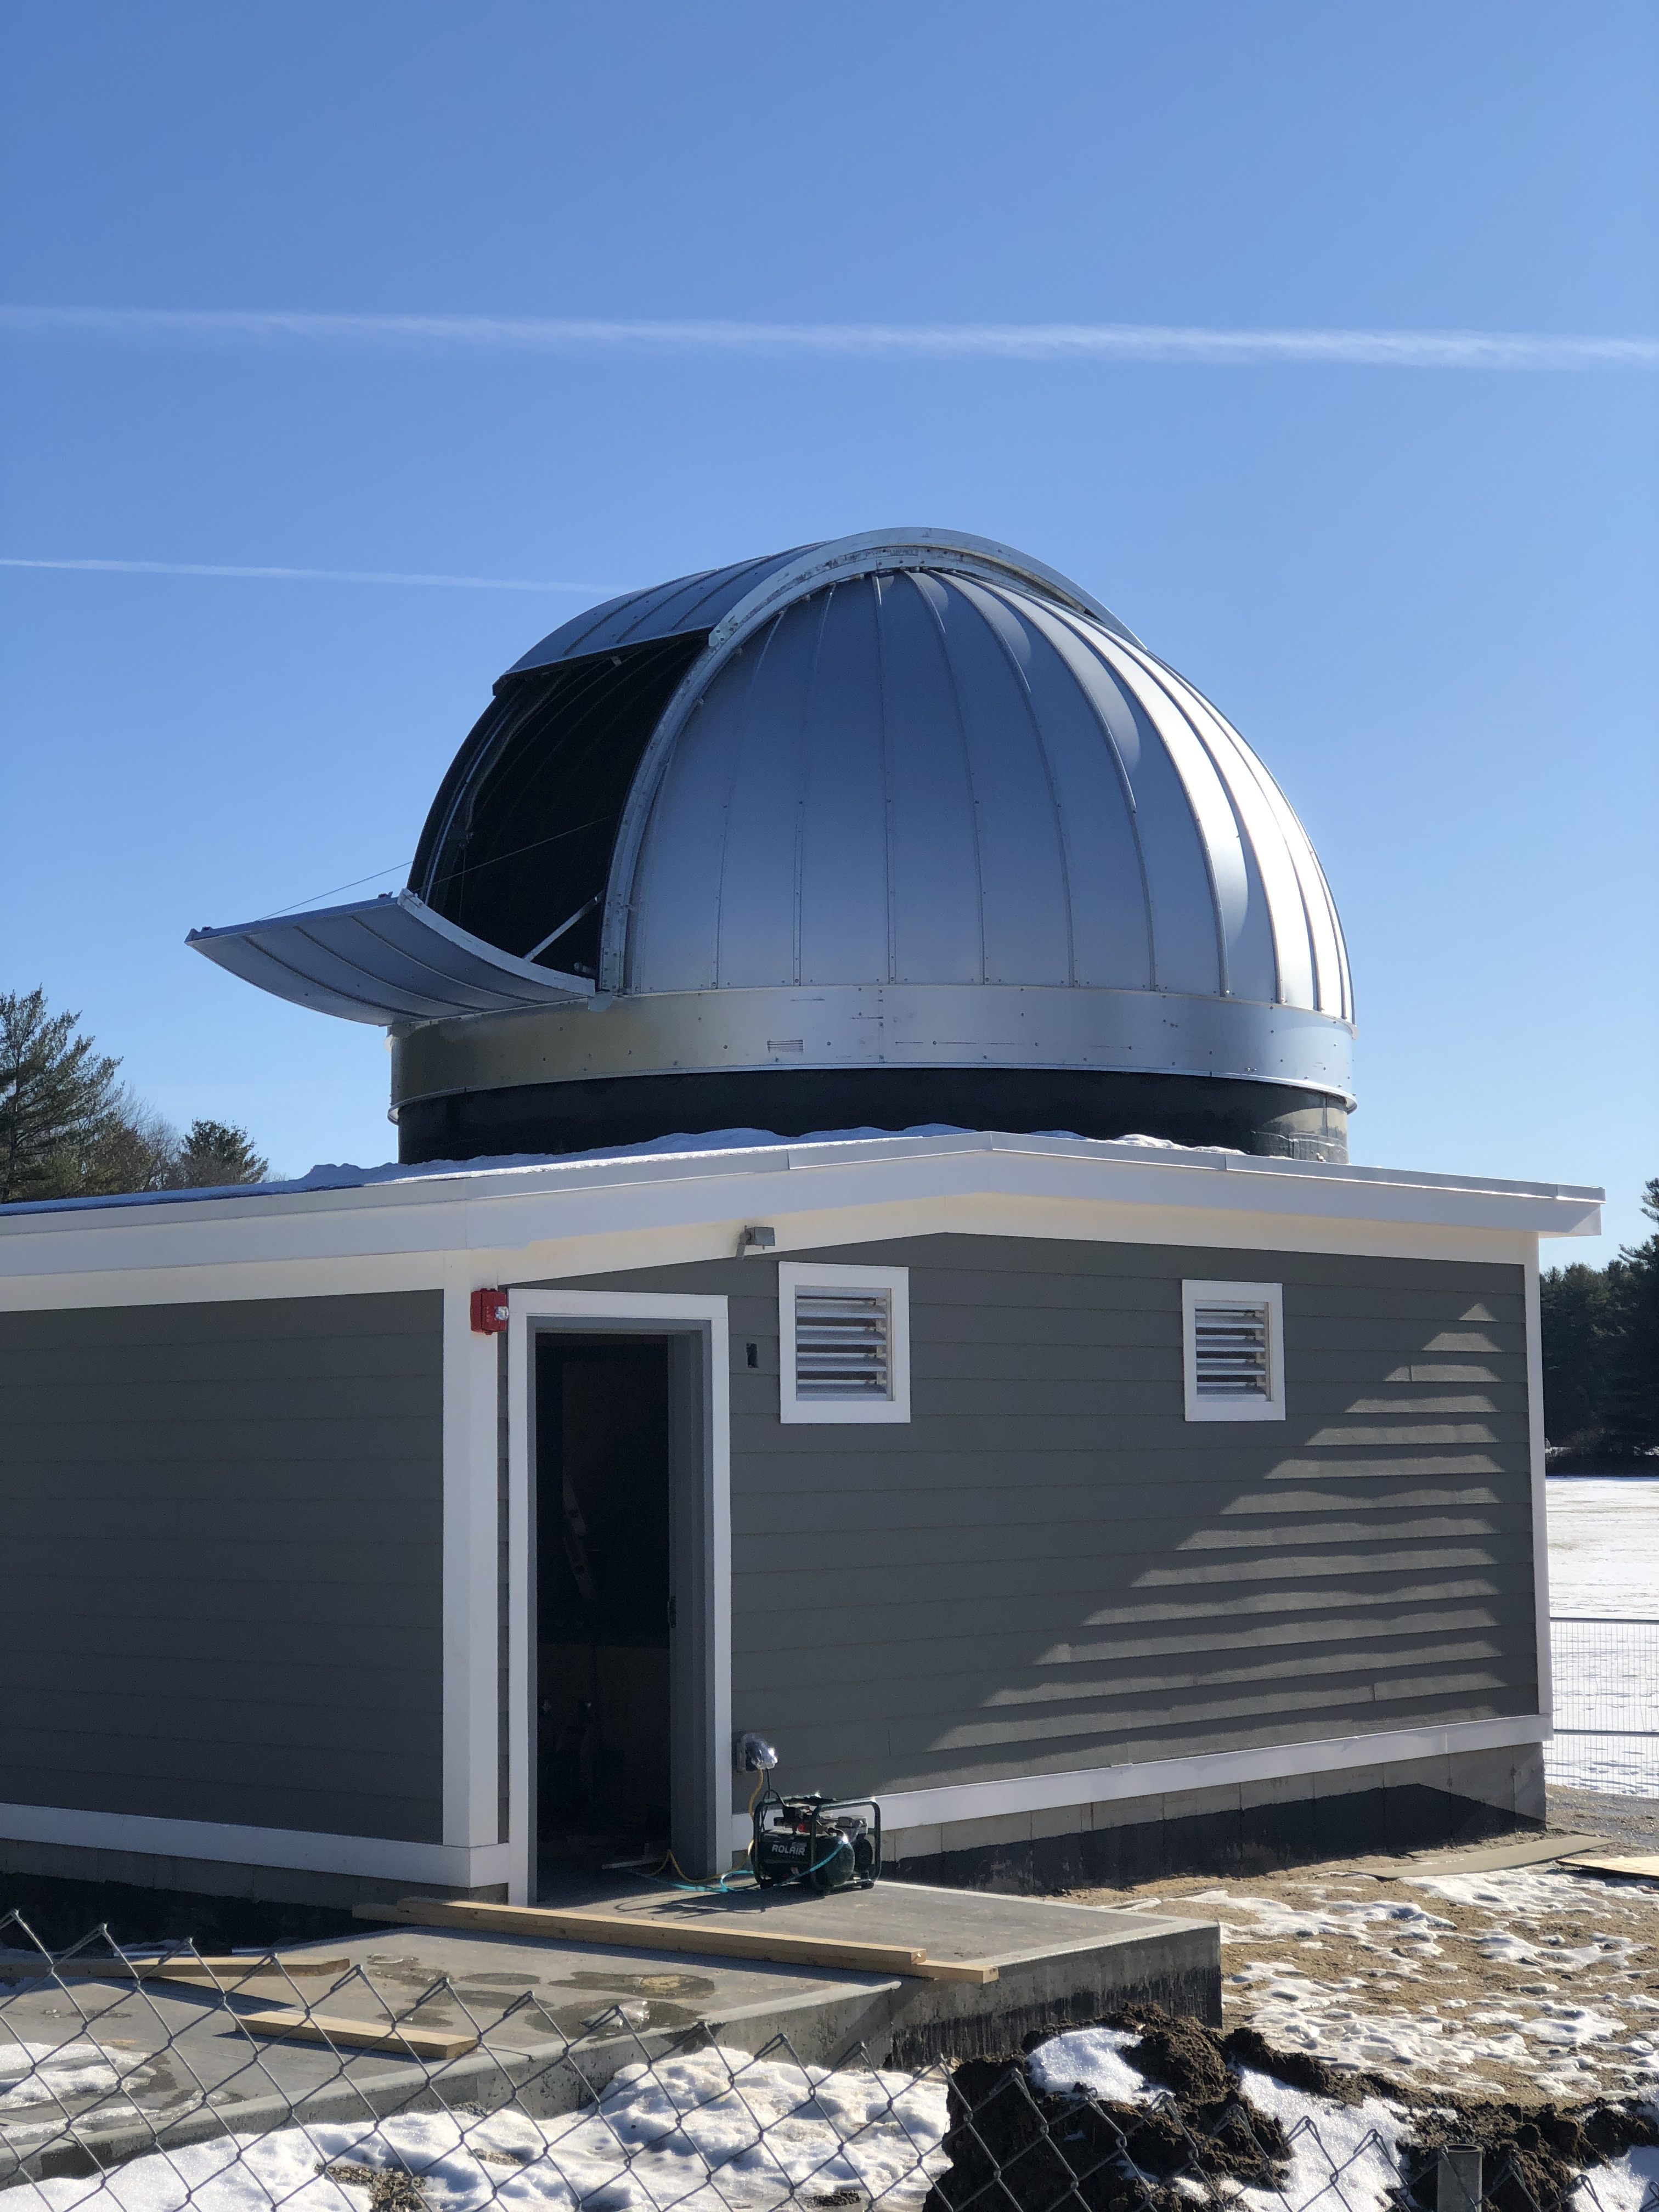 Exterior view with the lower shutter open and the dome rotated to point north.